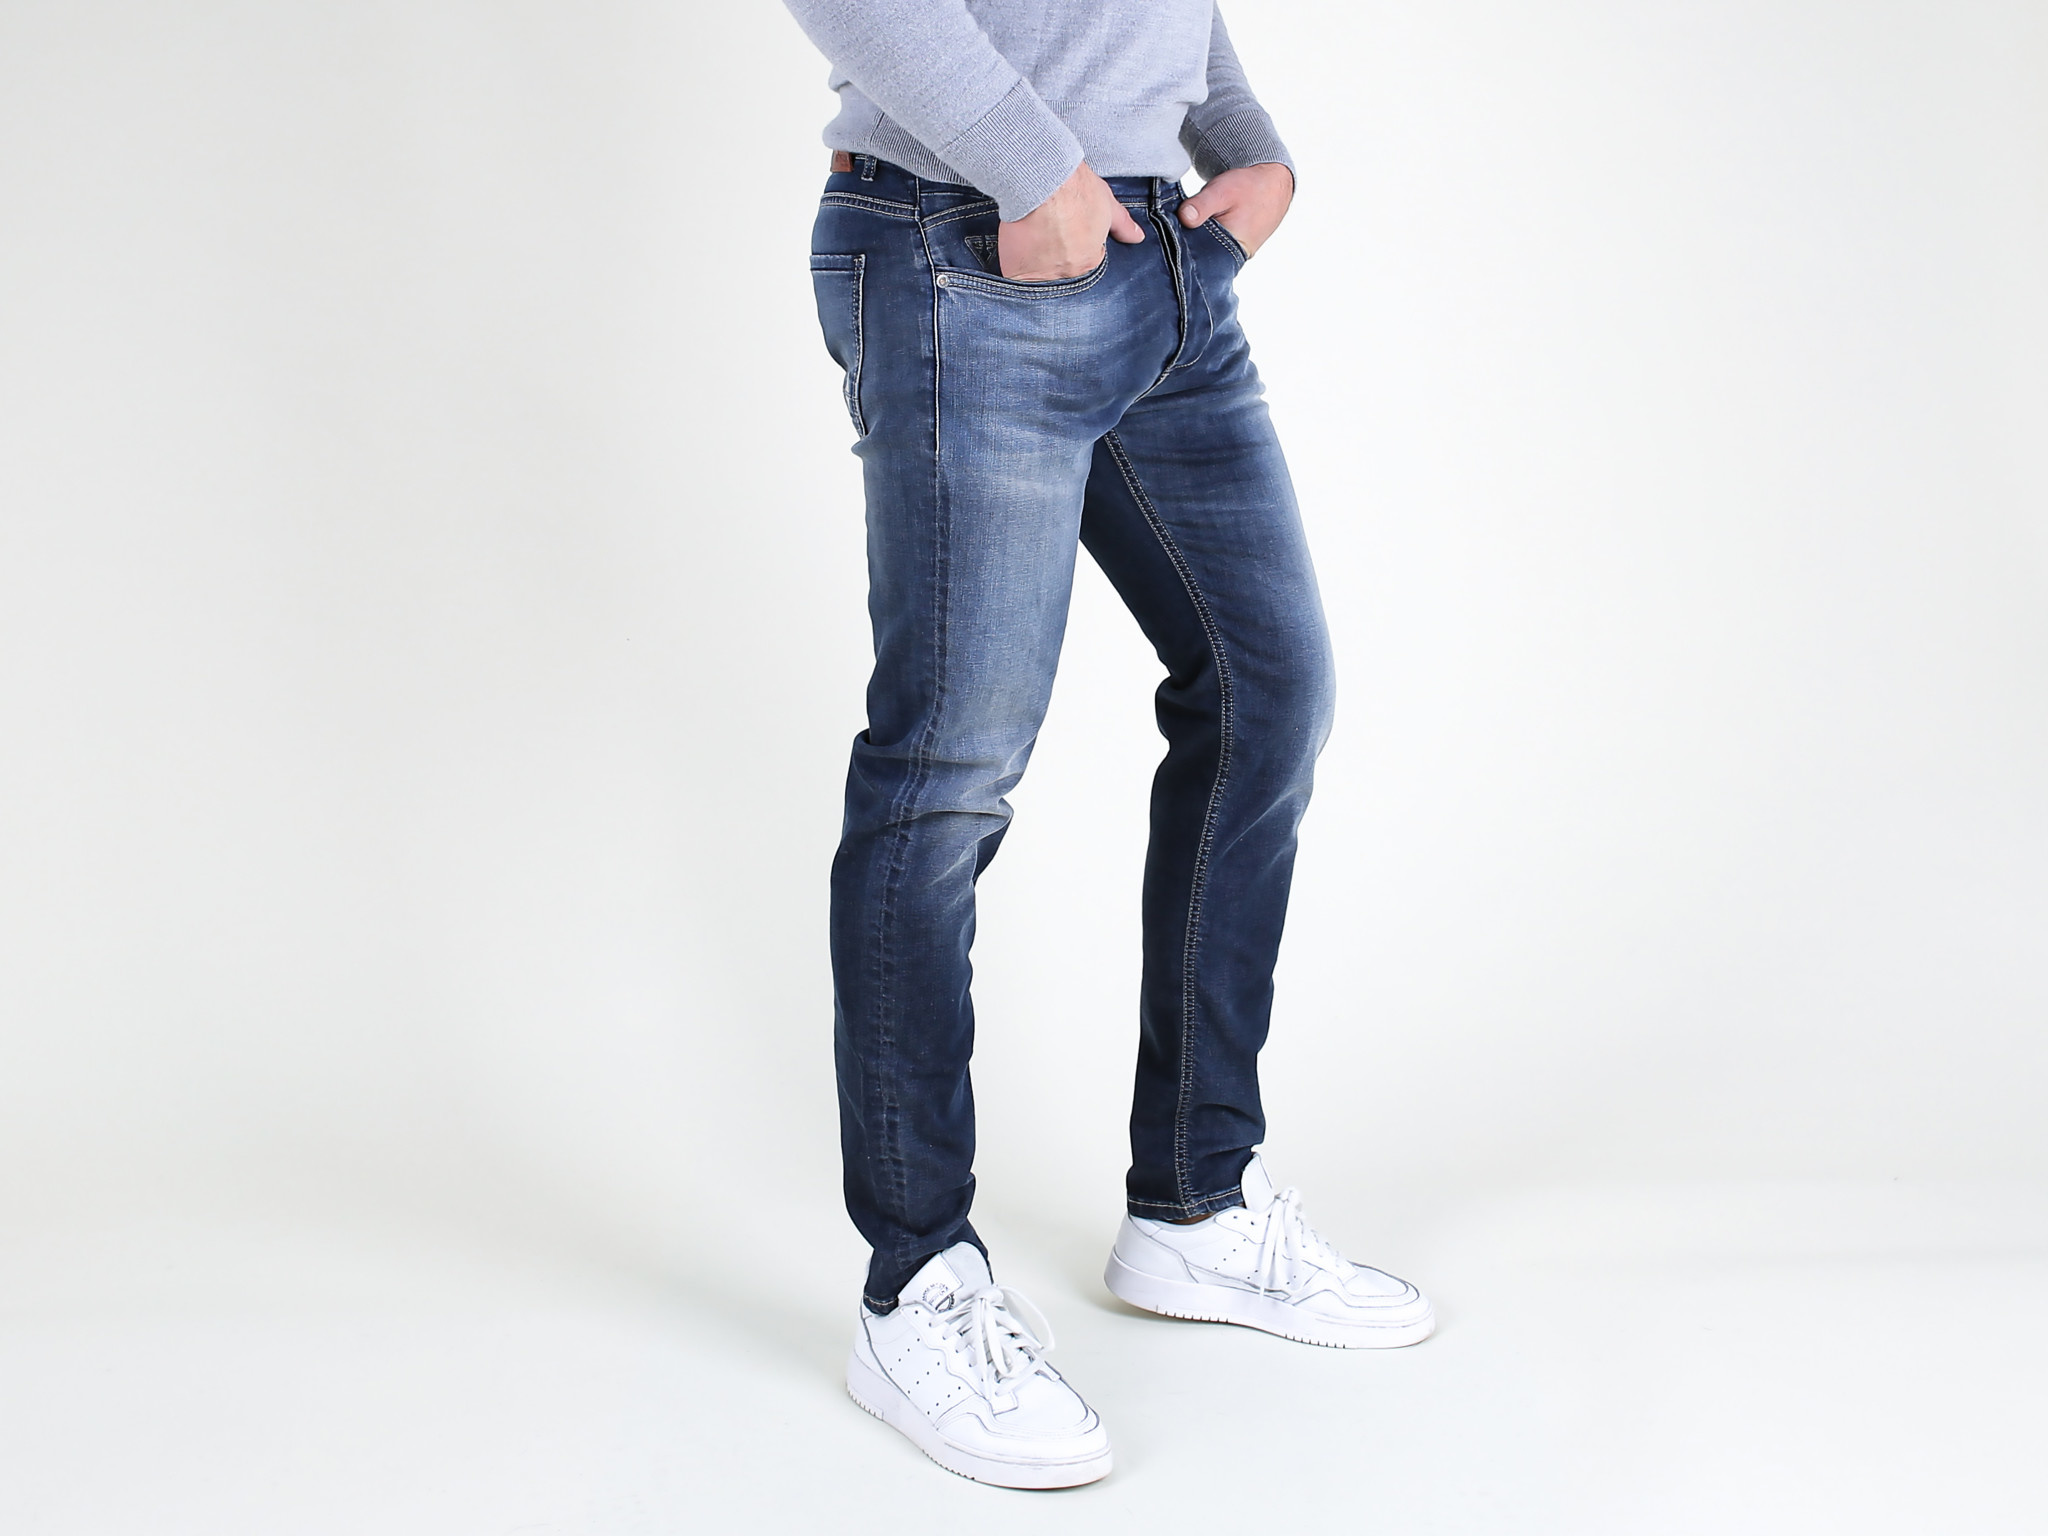 Fifty Four Fifty Four Rages J341 FA55 Slim Jeans Washed Blue